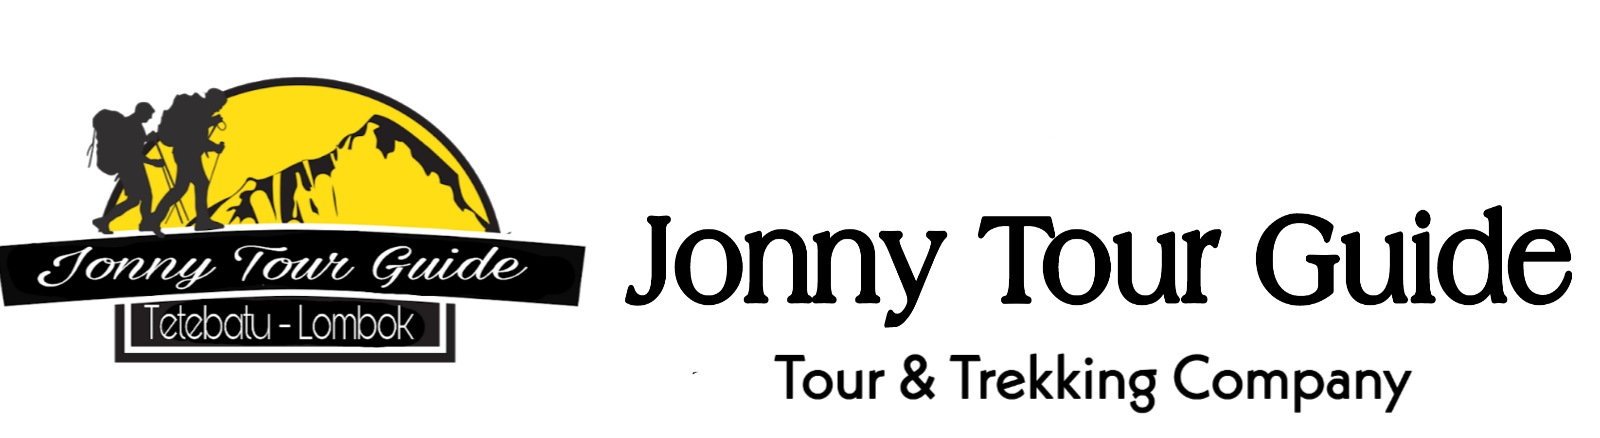 Jonny Tour Guide, Tetebatu, Lombok, Mount Rinjani Trekking And Transport Lombok